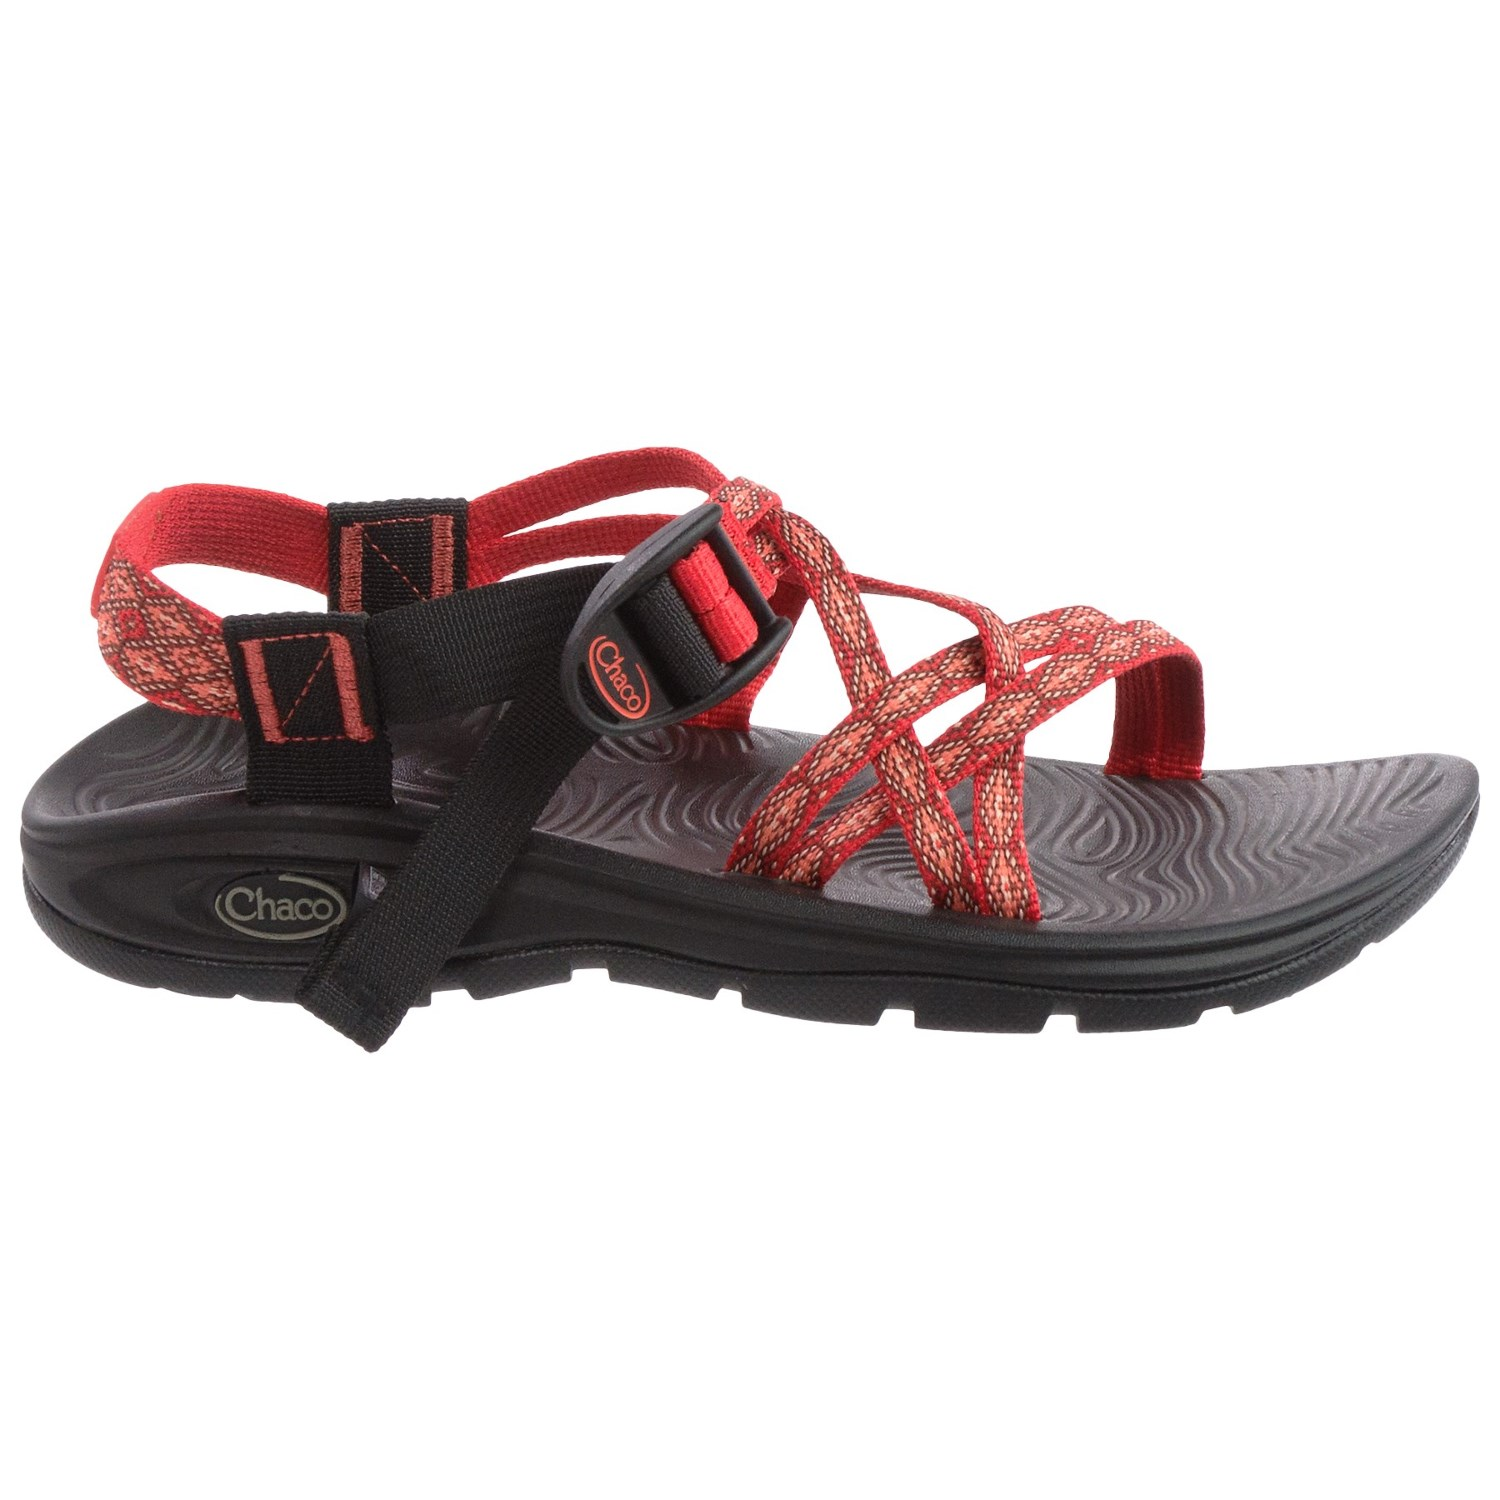 Where To Buy Outdoor Cushions Perth picture on chaco zandvolv x sport sandals for women~p~9914y with Where To Buy Outdoor Cushions Perth, sofa aa42f8b26e820e2f64bb81aaeebd326d